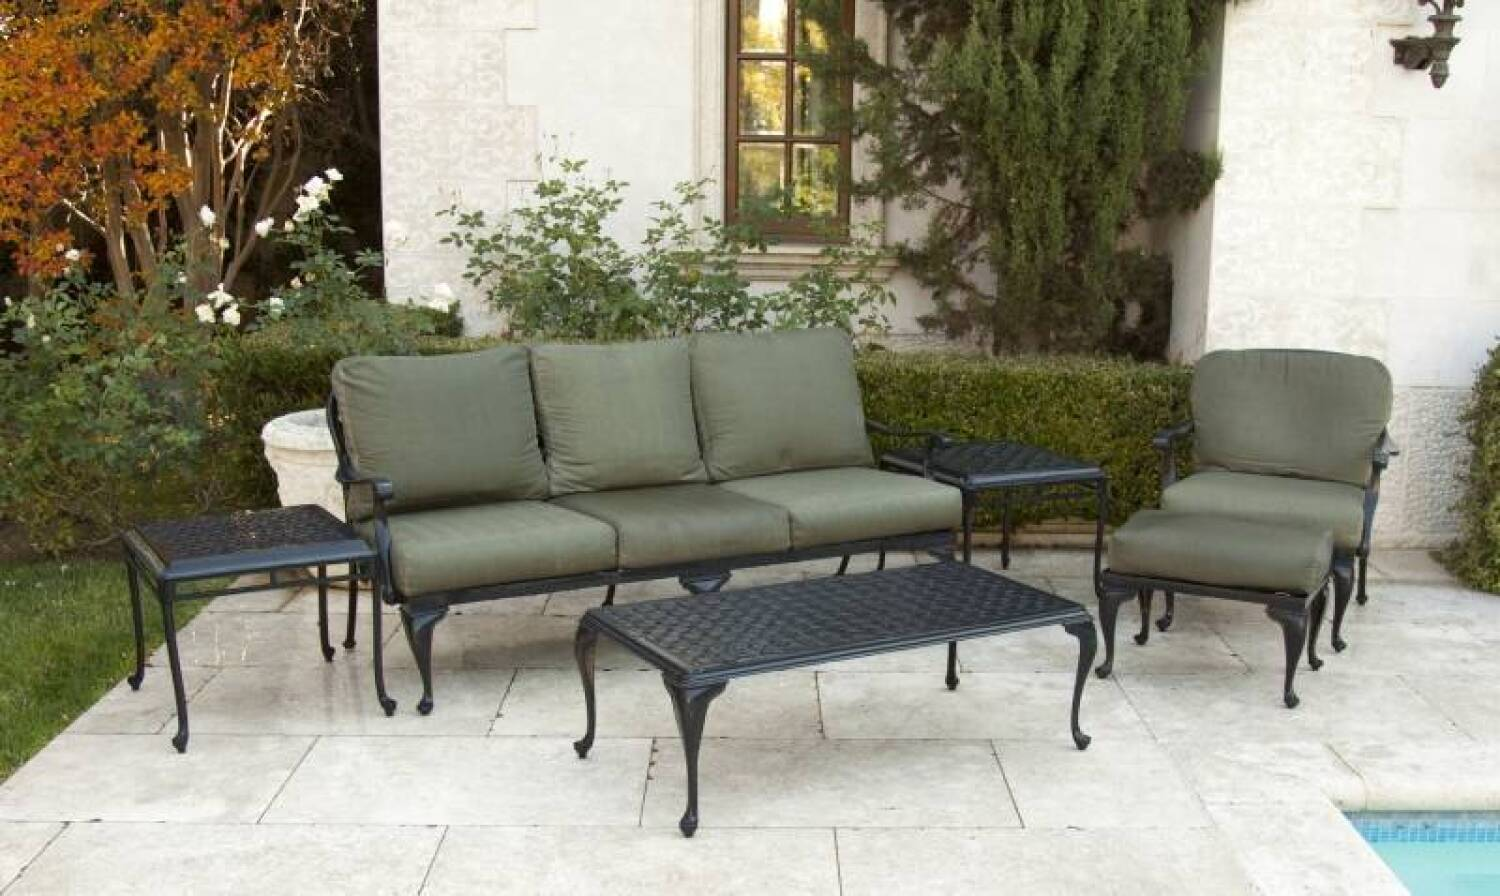 Group Of Smith And Hawken Patio Furniture Current Price